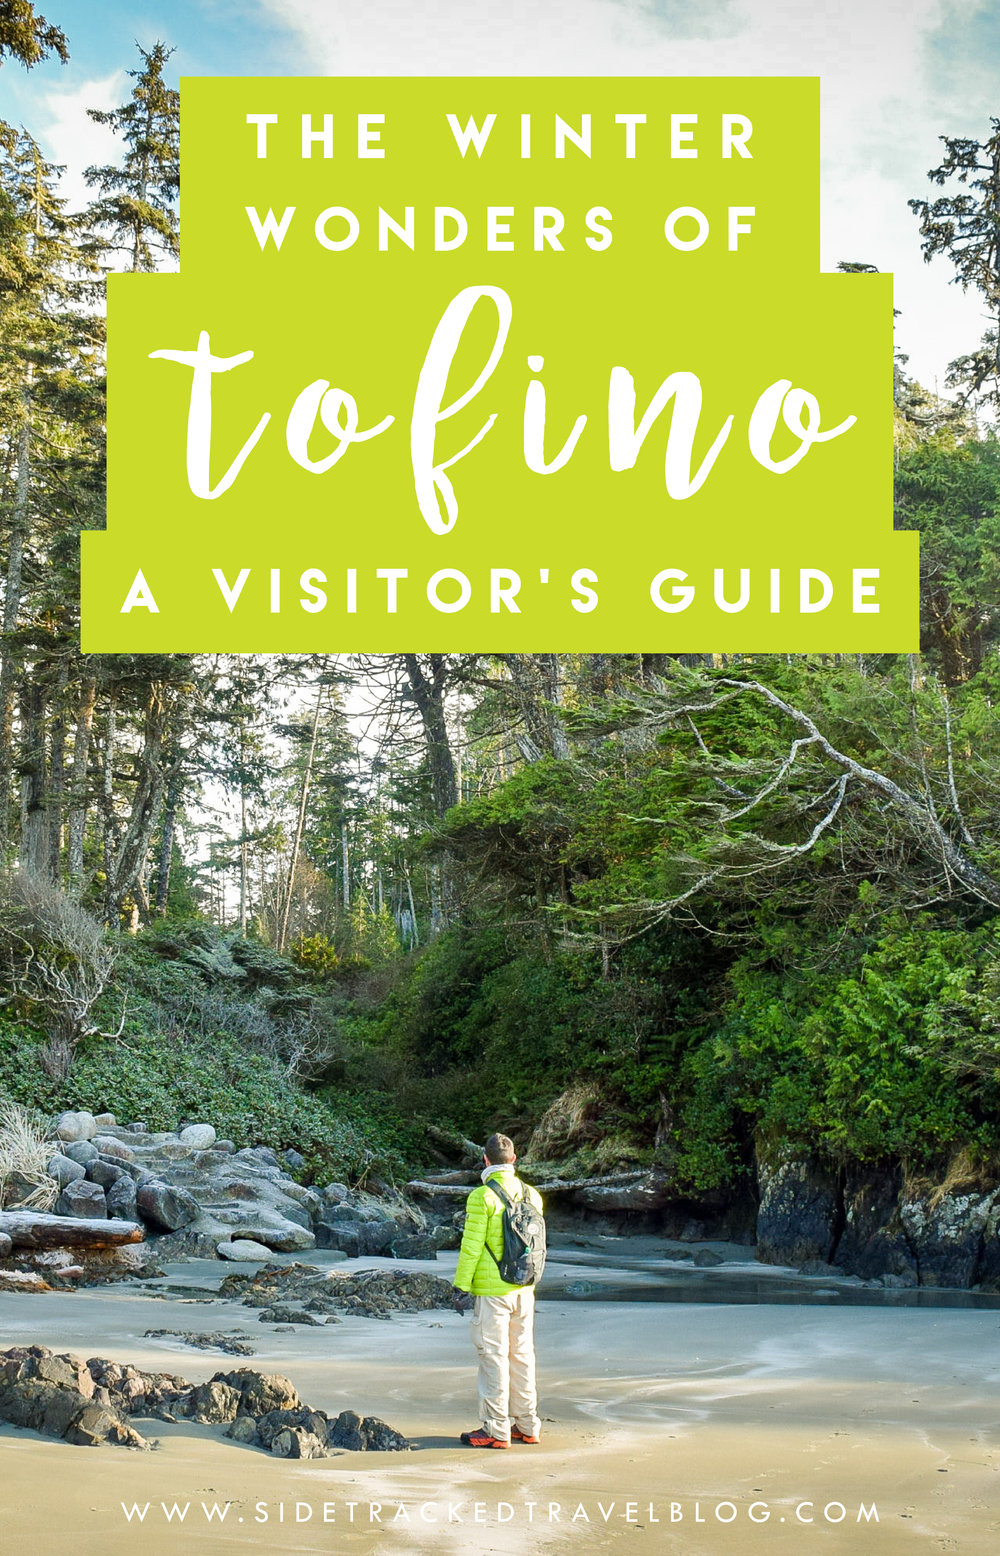 Heading to Vancouver Island? You simply have to visit Tofino, especially in the winter when the majority of tourists have gone home and you'll have this gorgeous Pacific jewel practically all to yourself.So pack your bags and explore the winter wonders in and around Tofino.